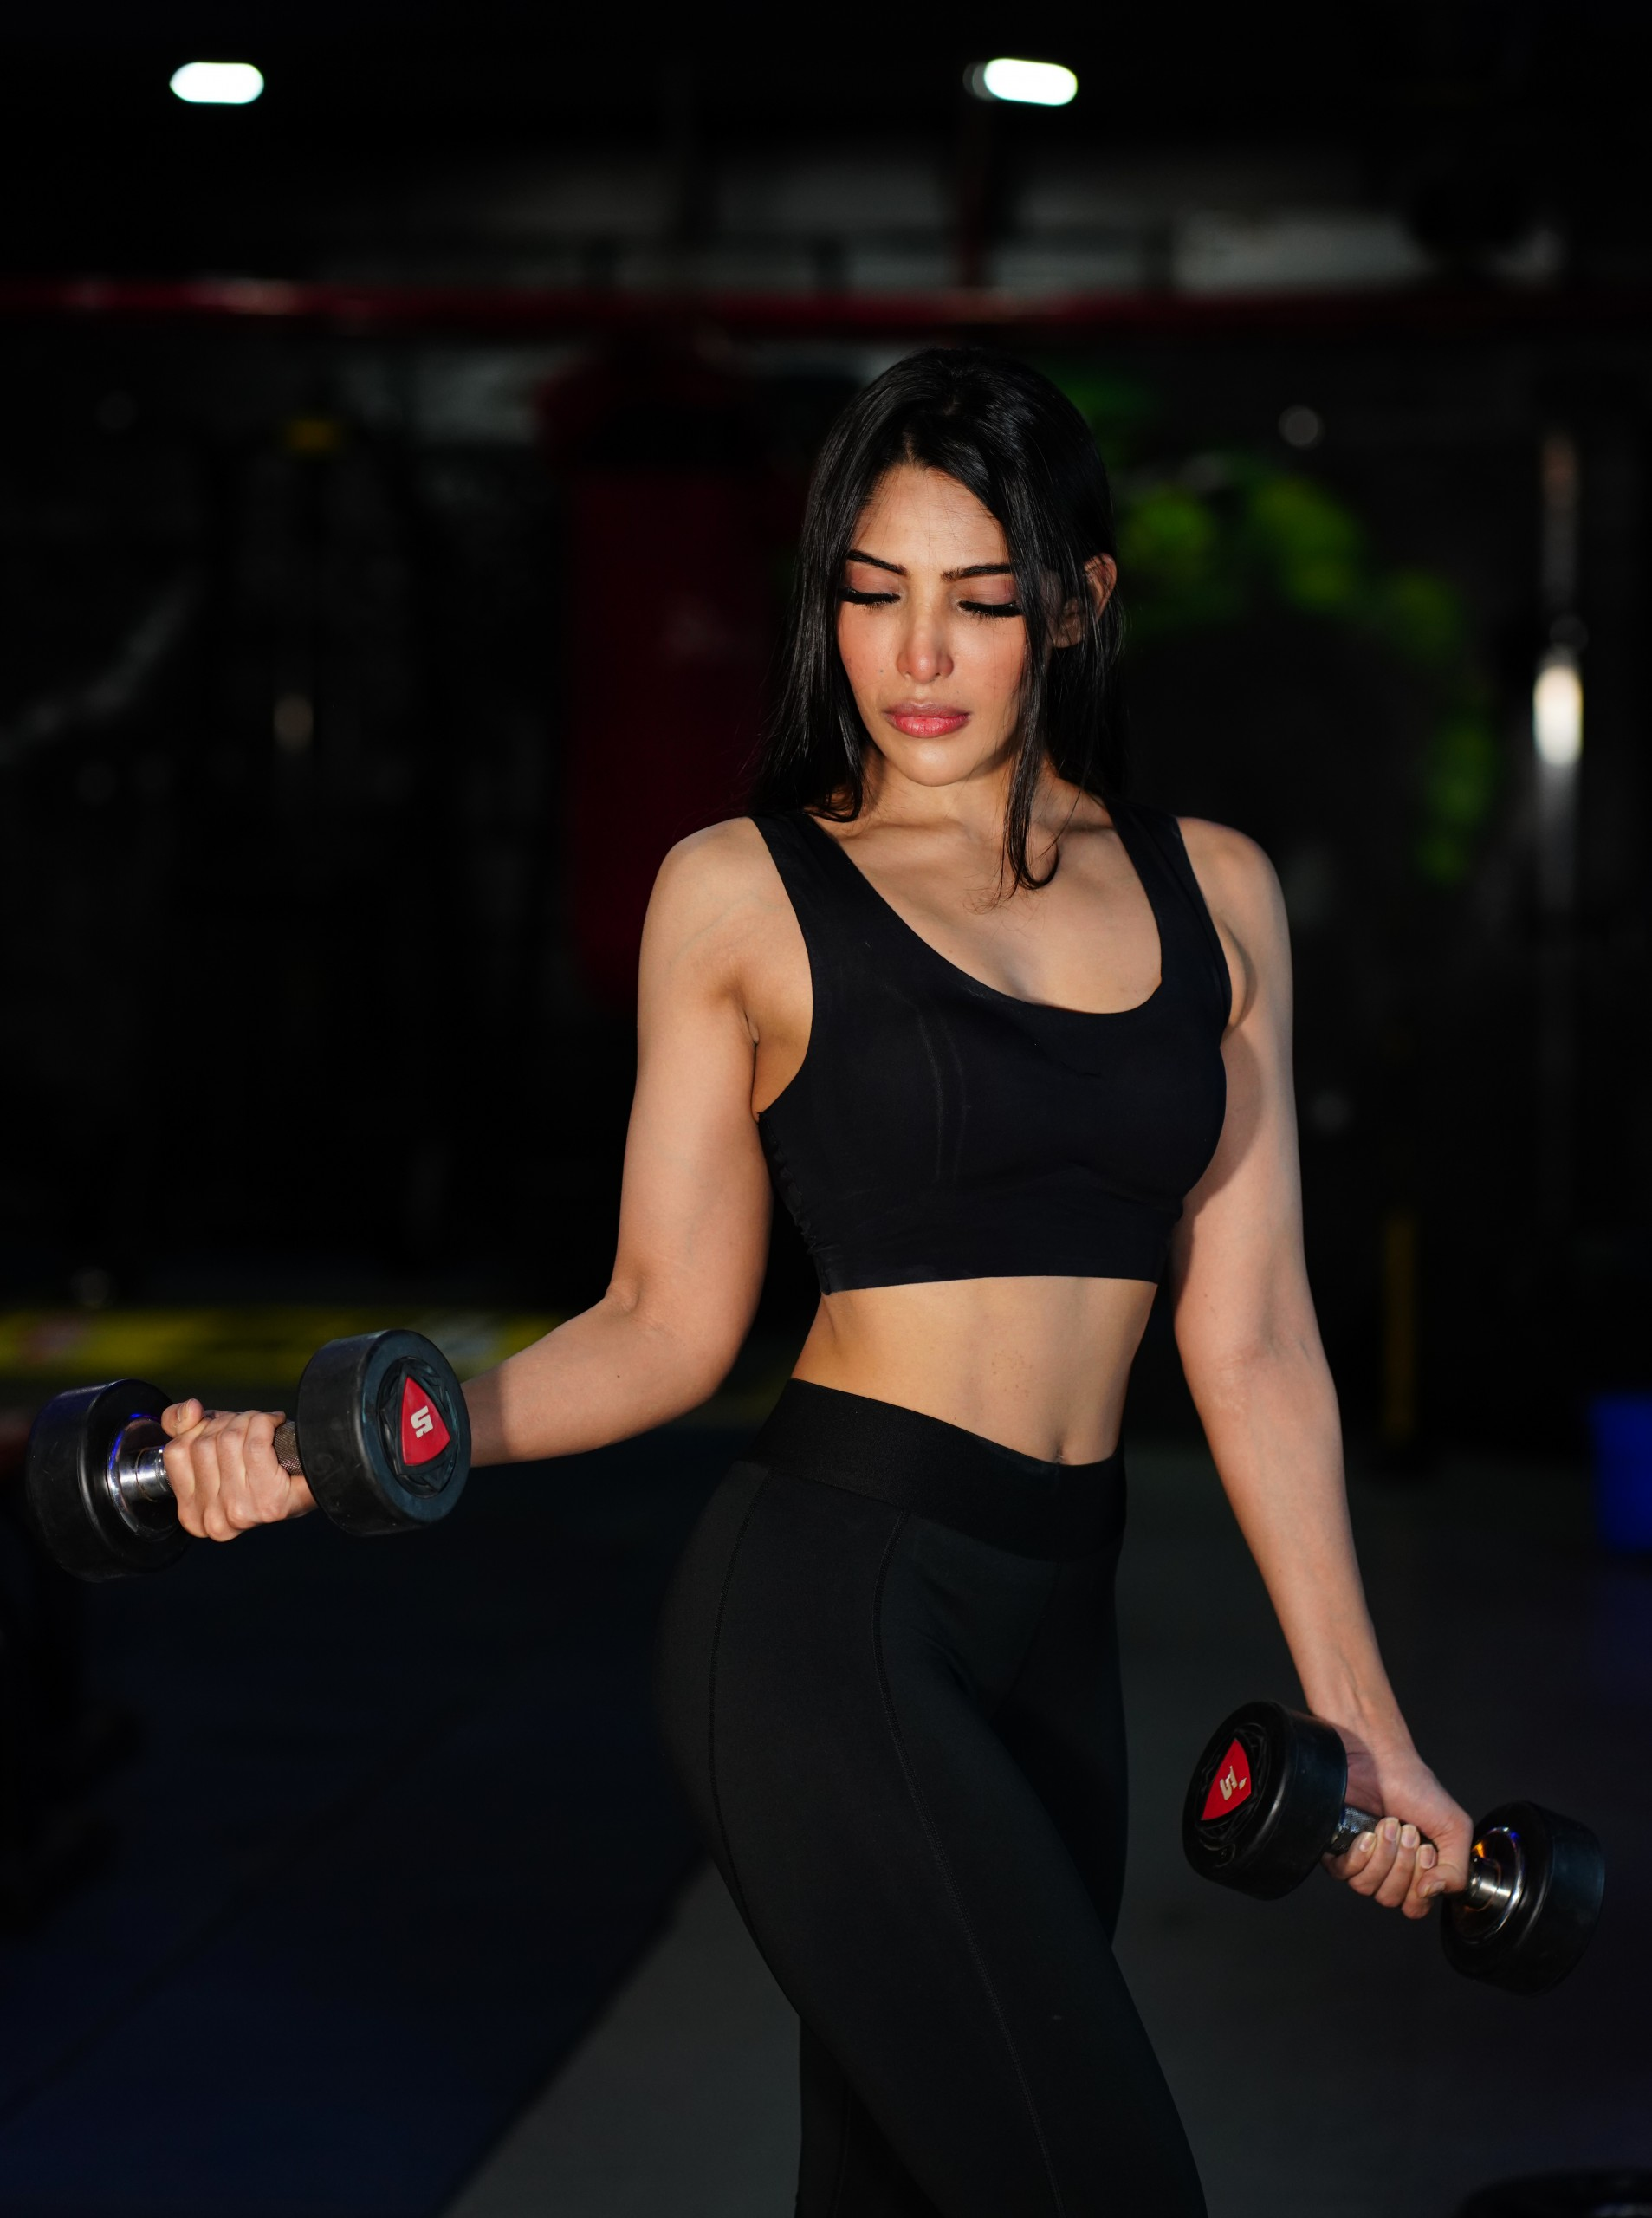 Sporty woman holding dumbbells in the gym